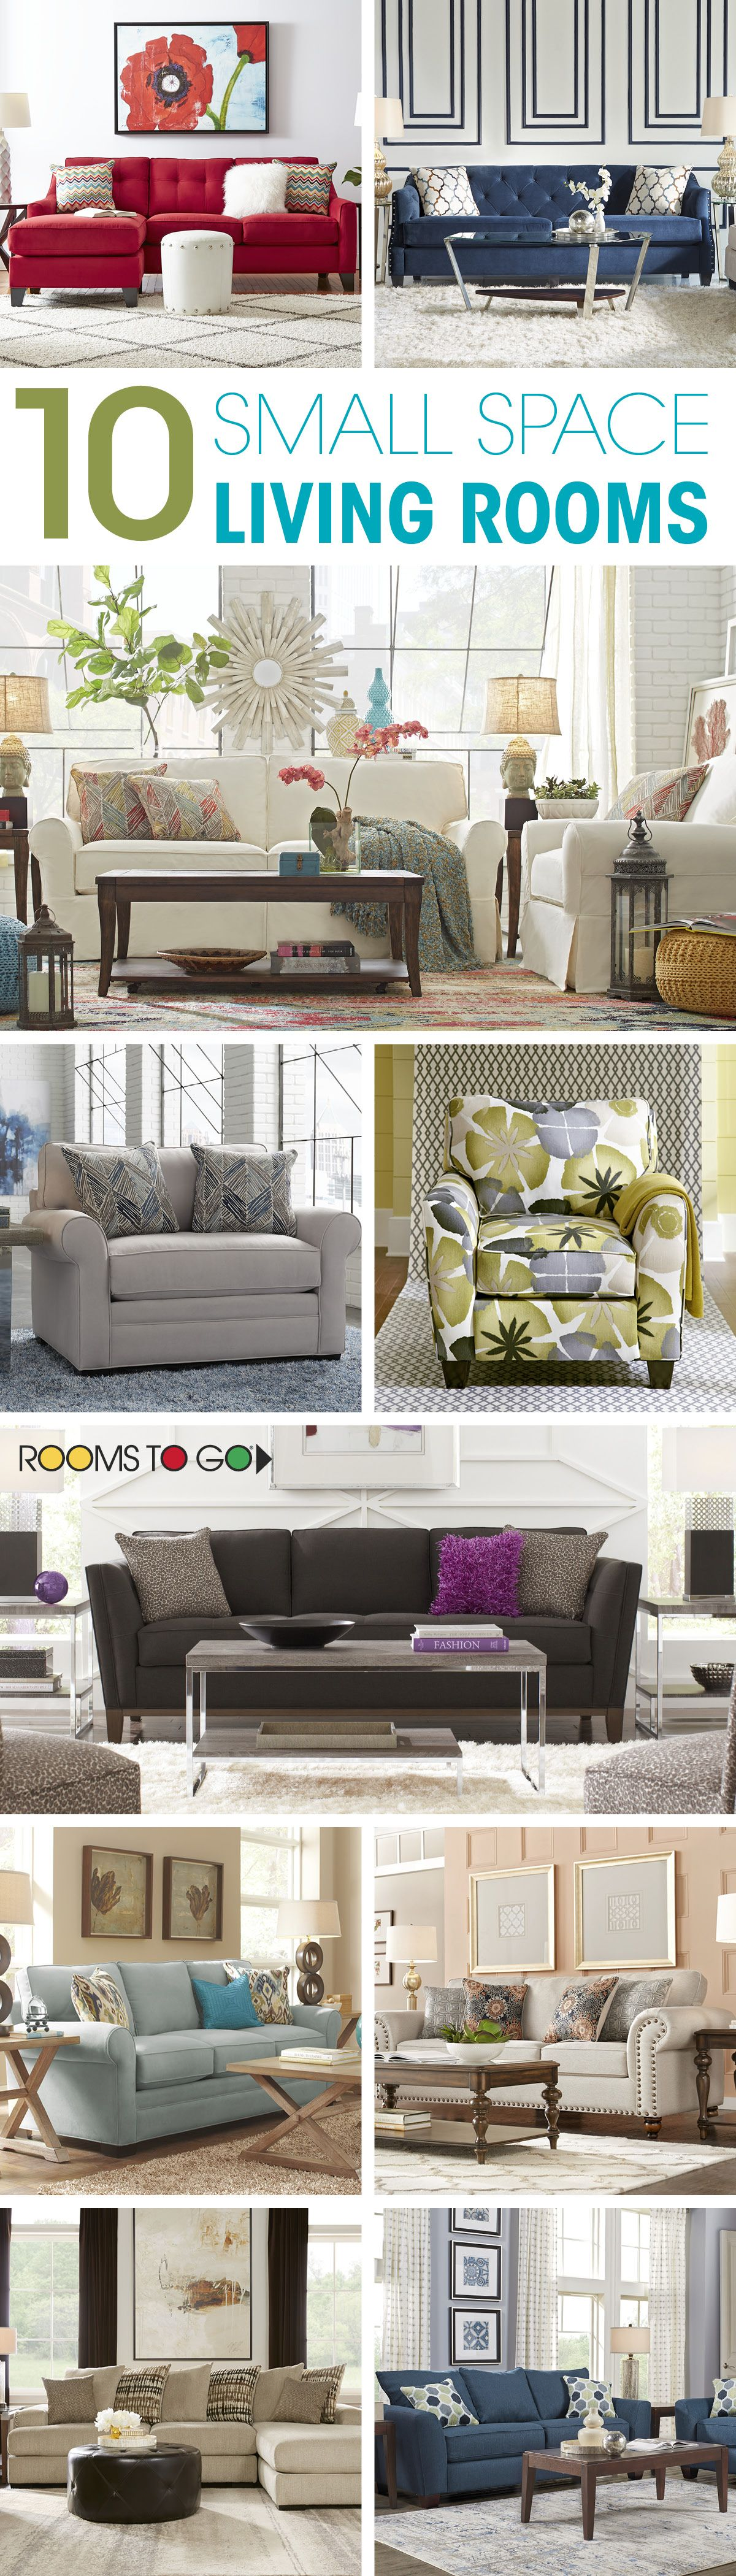 ideas inspirational loveseat go of rooms luxury and to couches room sofas